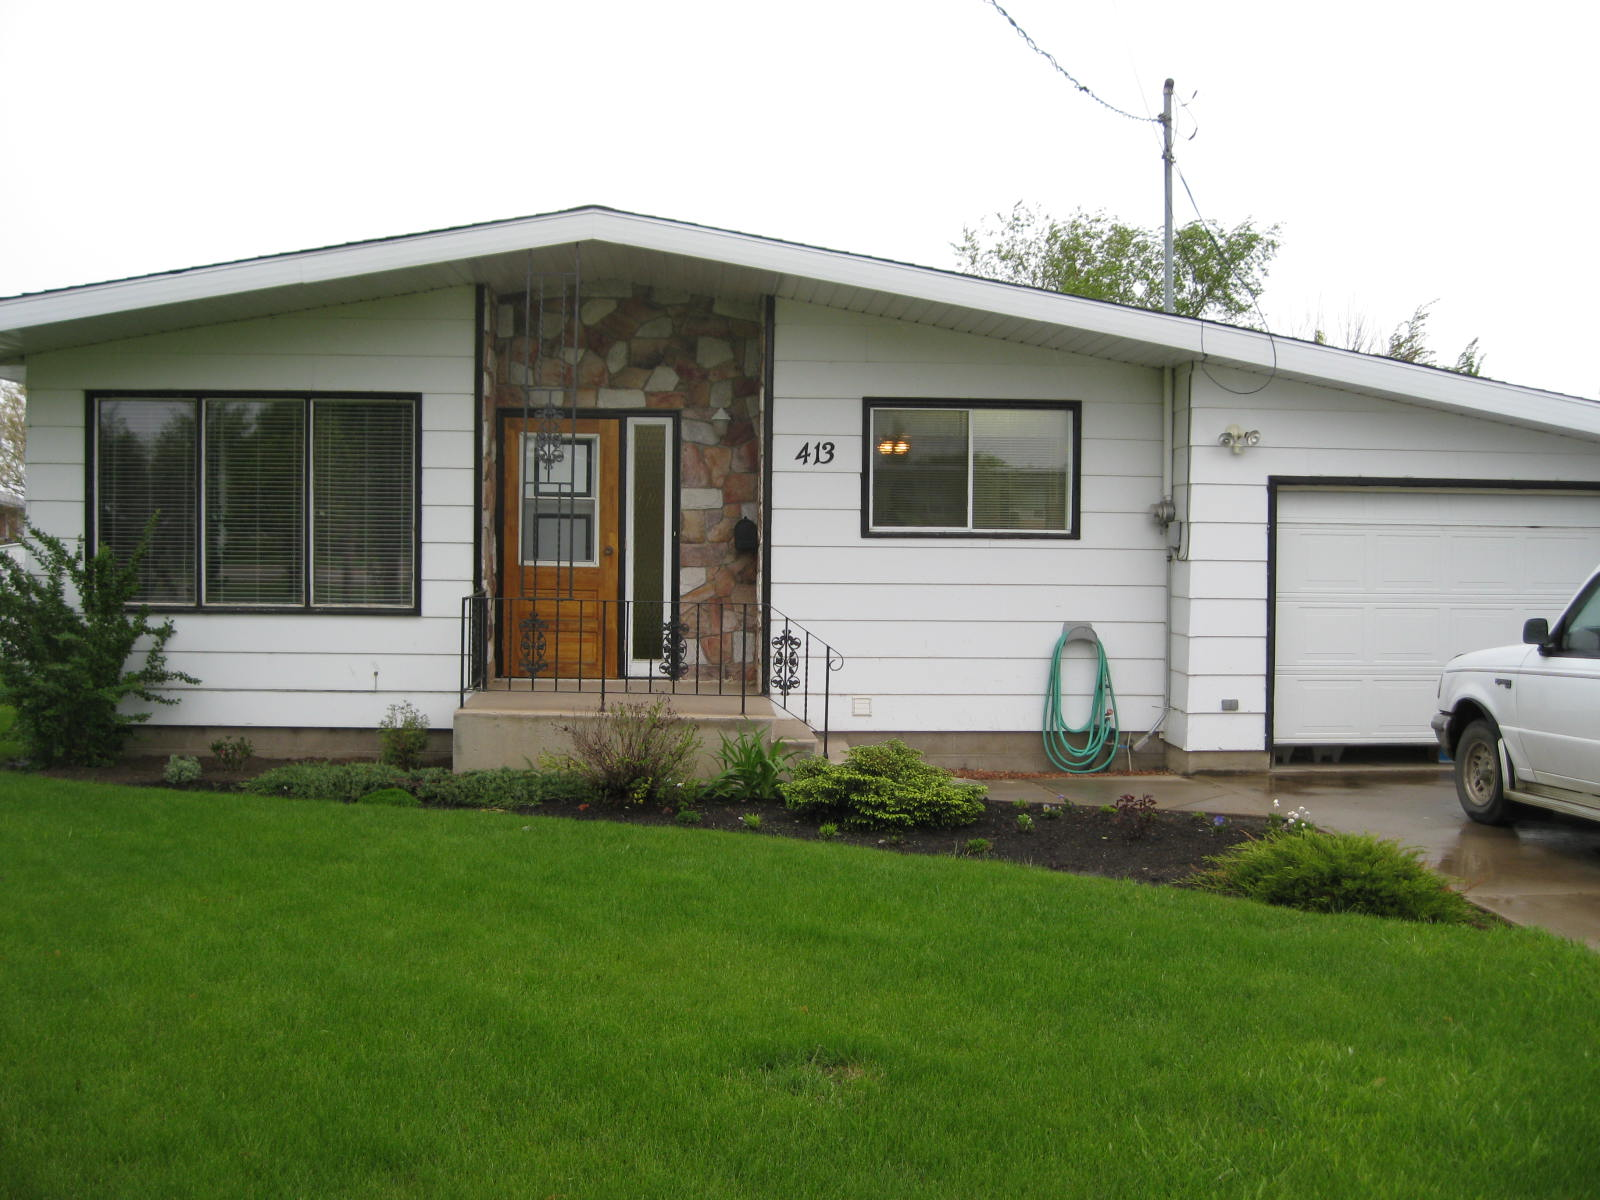 413 6th Ave Rosthern